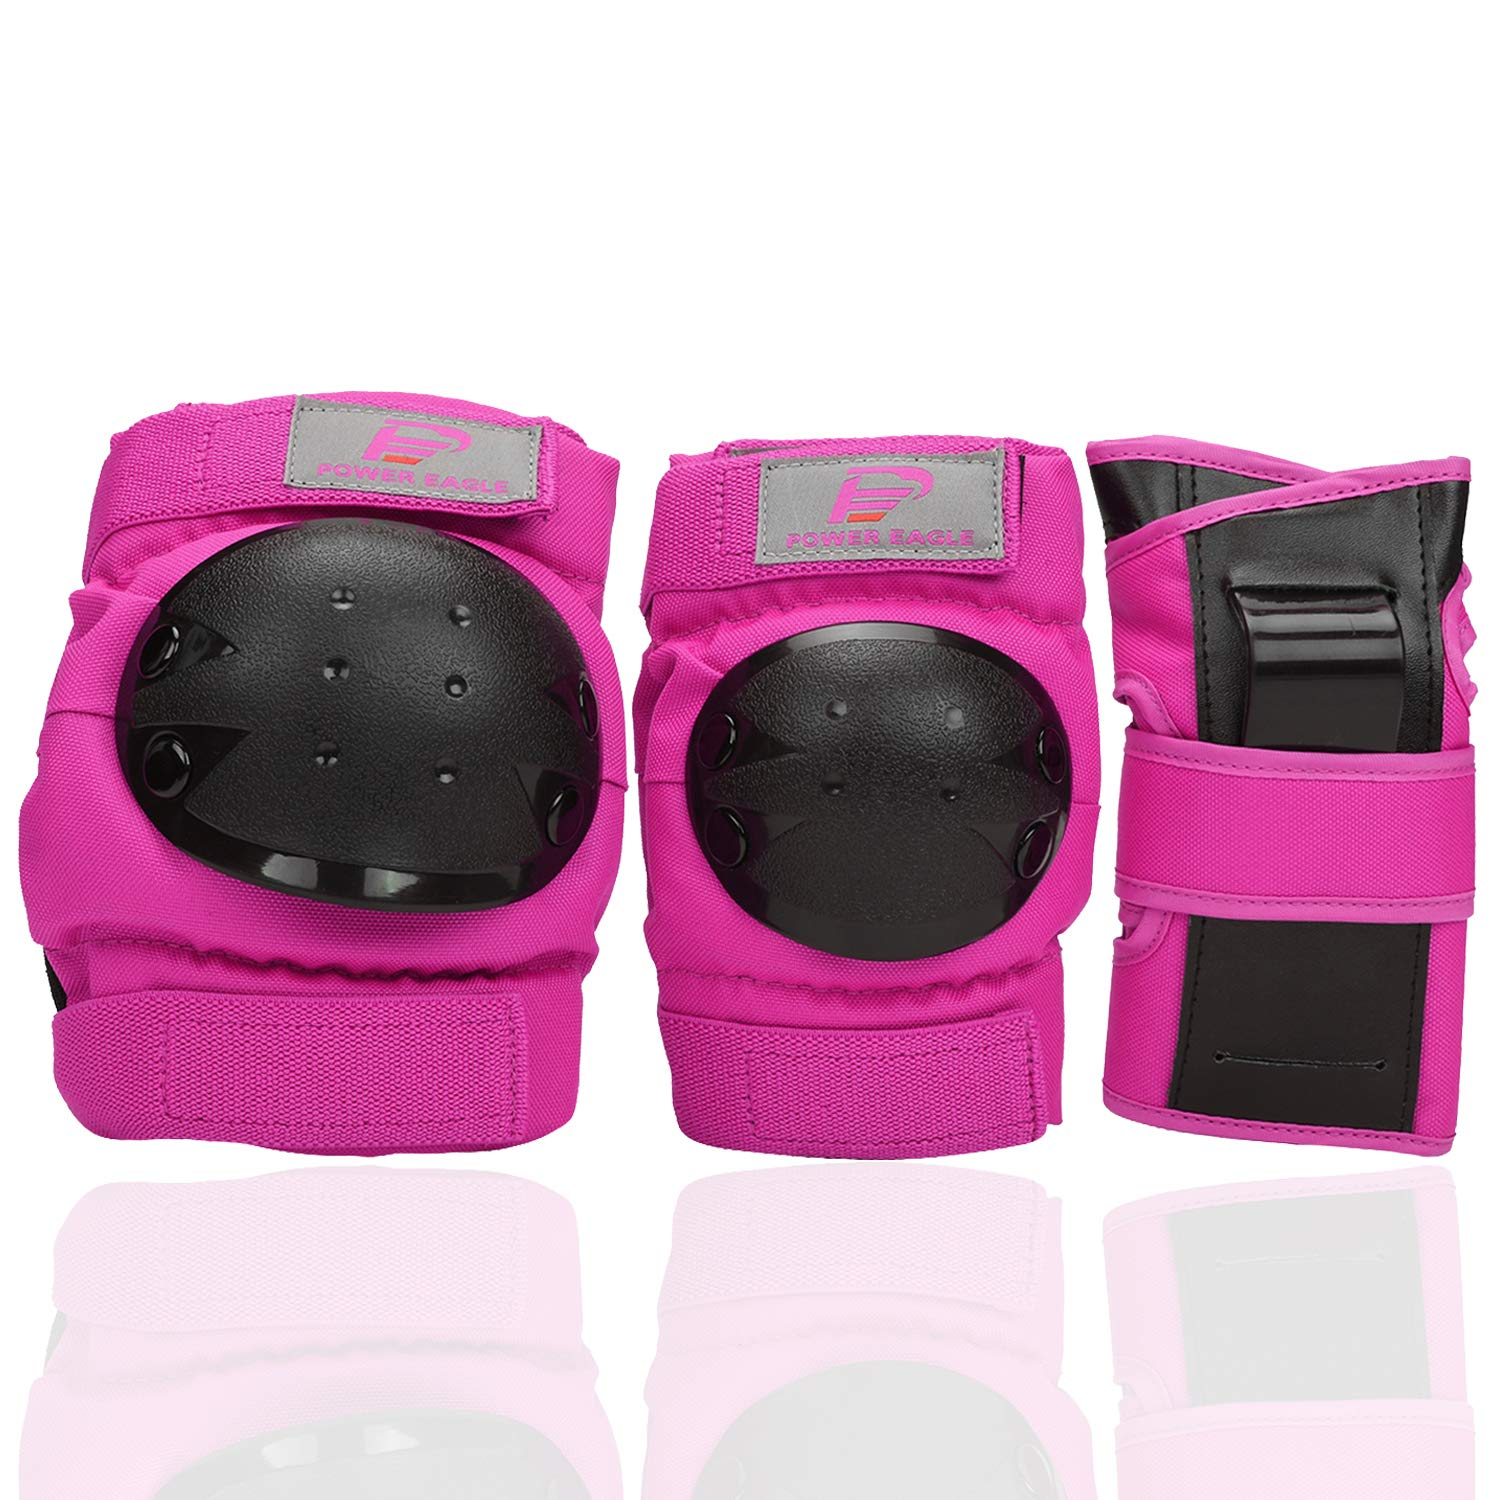 Power Eagle Kids Adults Knee Pads and Elbow Pads with Wrist Guards Protective Gear Suit for: Scooter, Skateboard, Bicycle, Snowboard, Inline Skating, Roller Skating Safety Protection (Pink, X-Small)